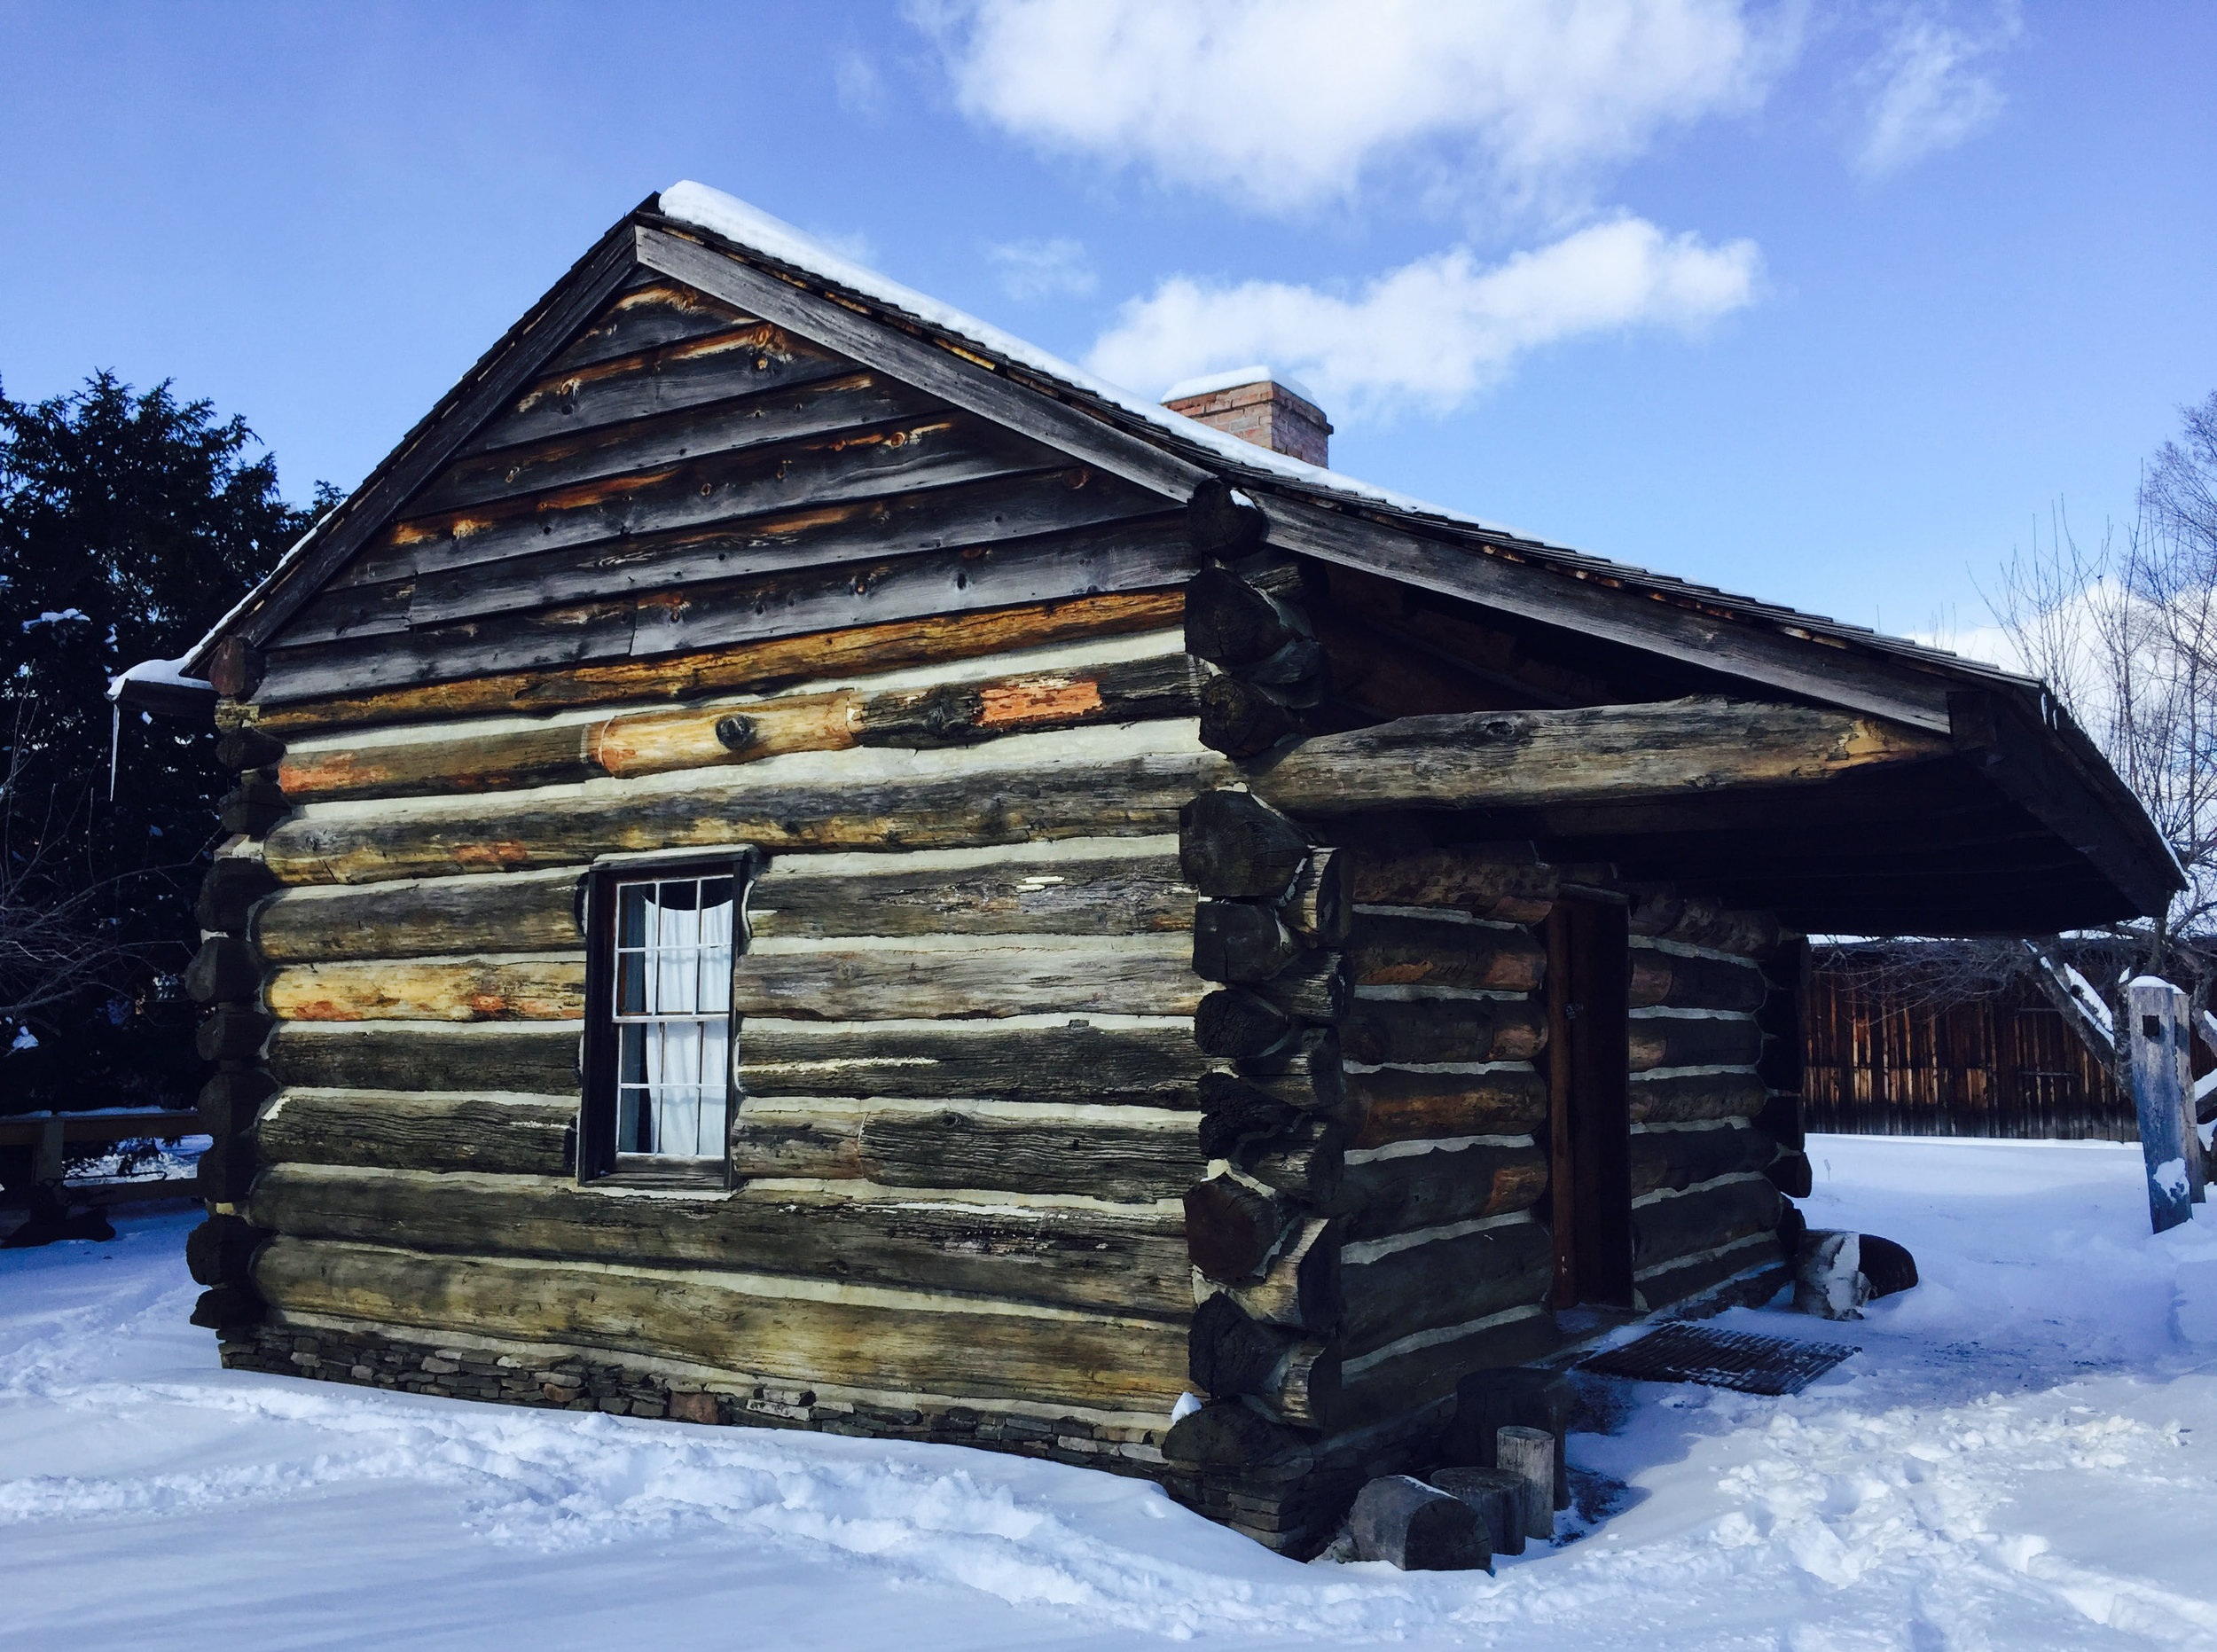 Corning/Painted-Post Historical Society, The Wixon Road Log Cabin